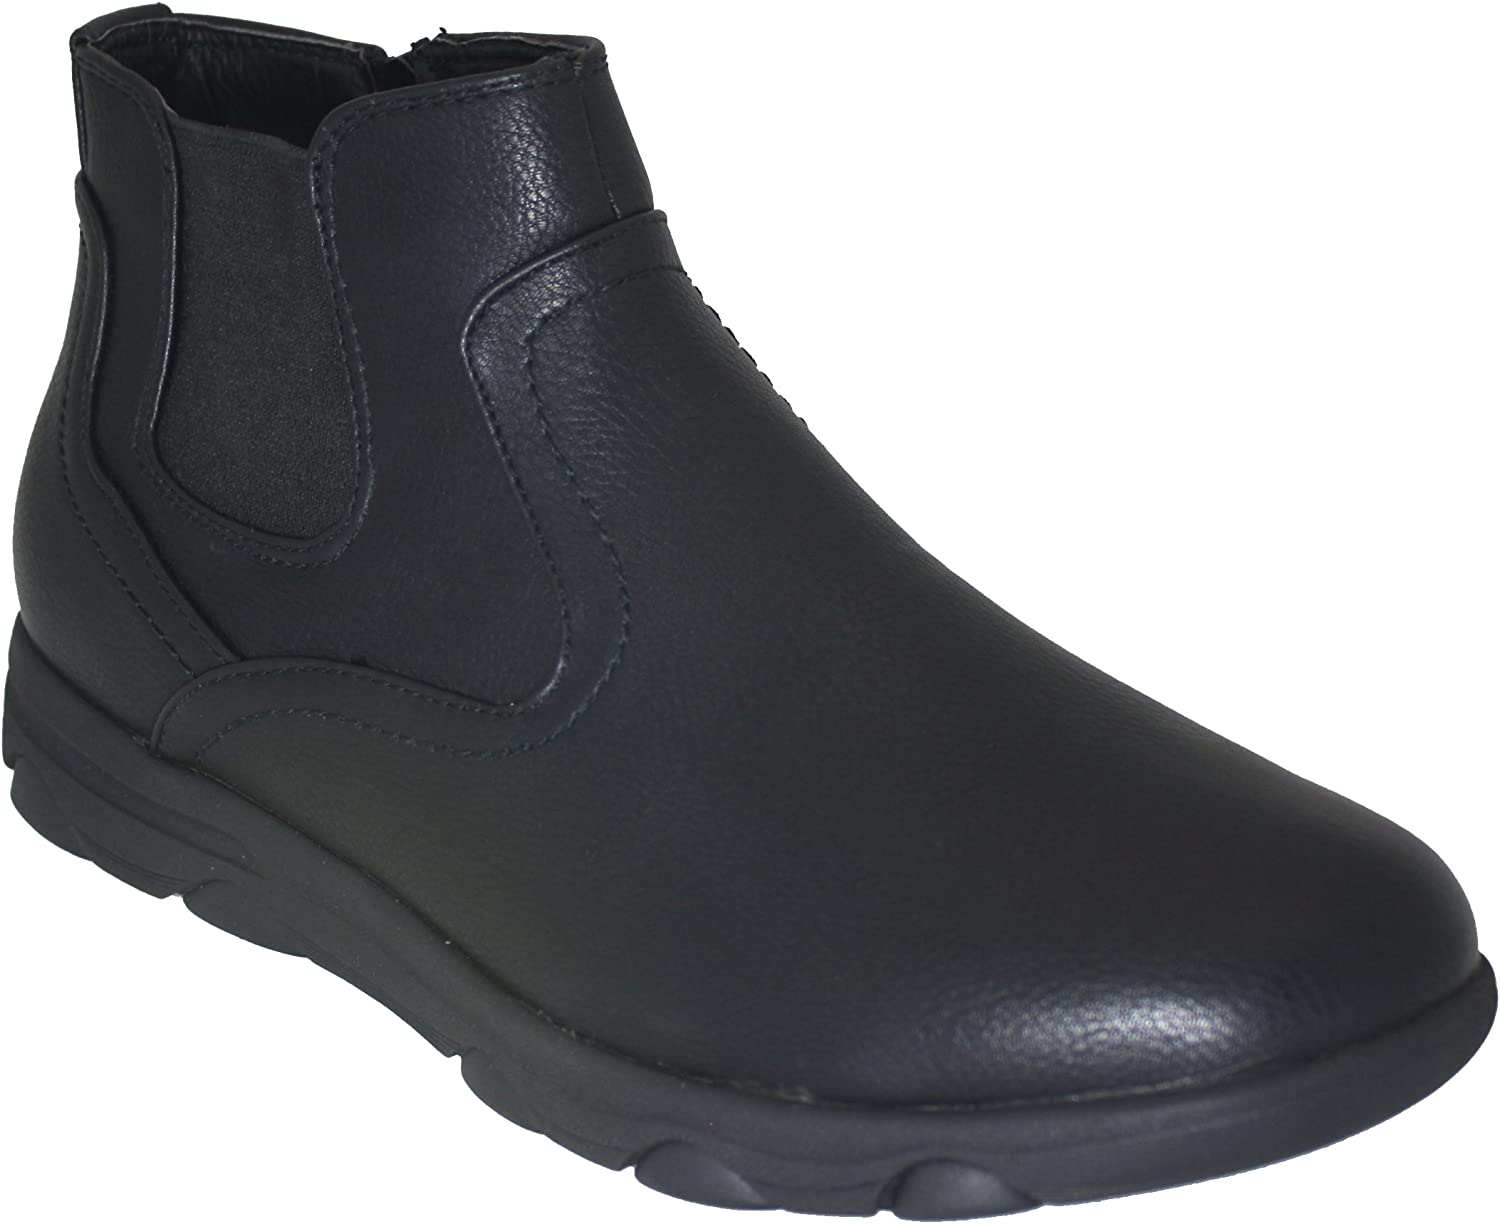 Gelato Mens 8558 Non-Slip Professional Comfort Work shoes with Memory Insole